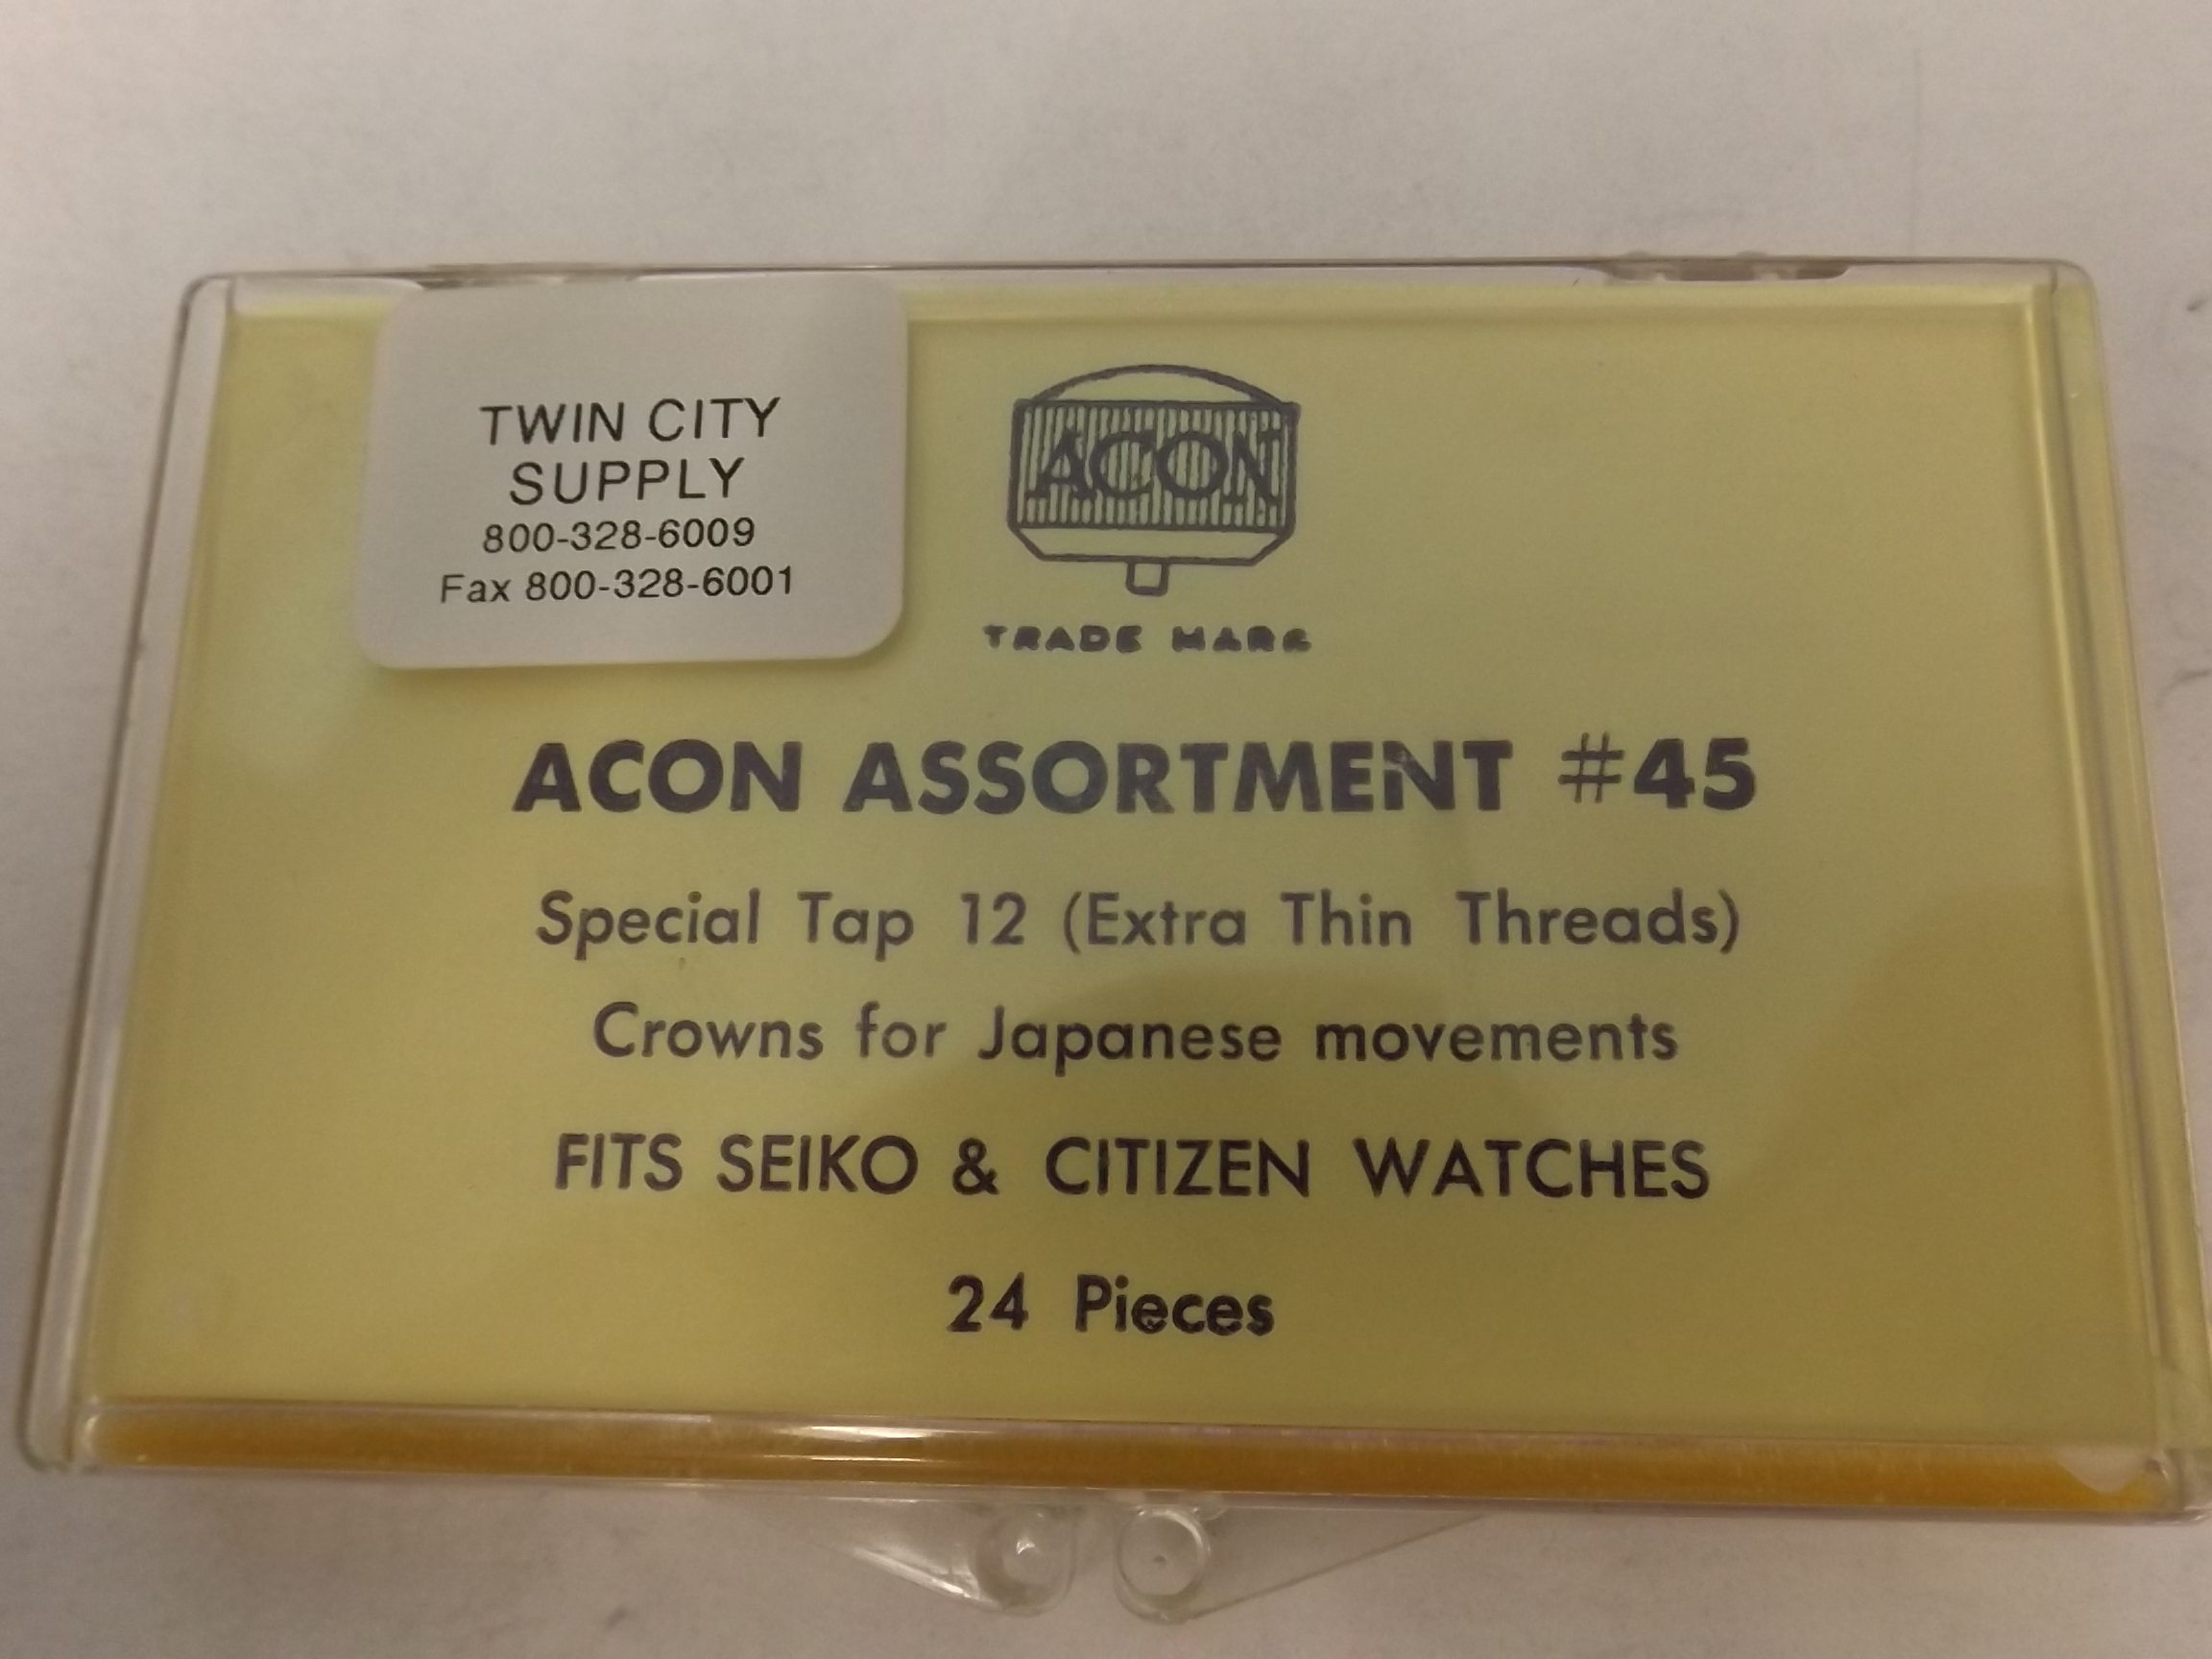 CR45A Special Tap 12 Watch Crowns Assortment with Extra Thin Threads- 24 Pieces -Acon- One Only